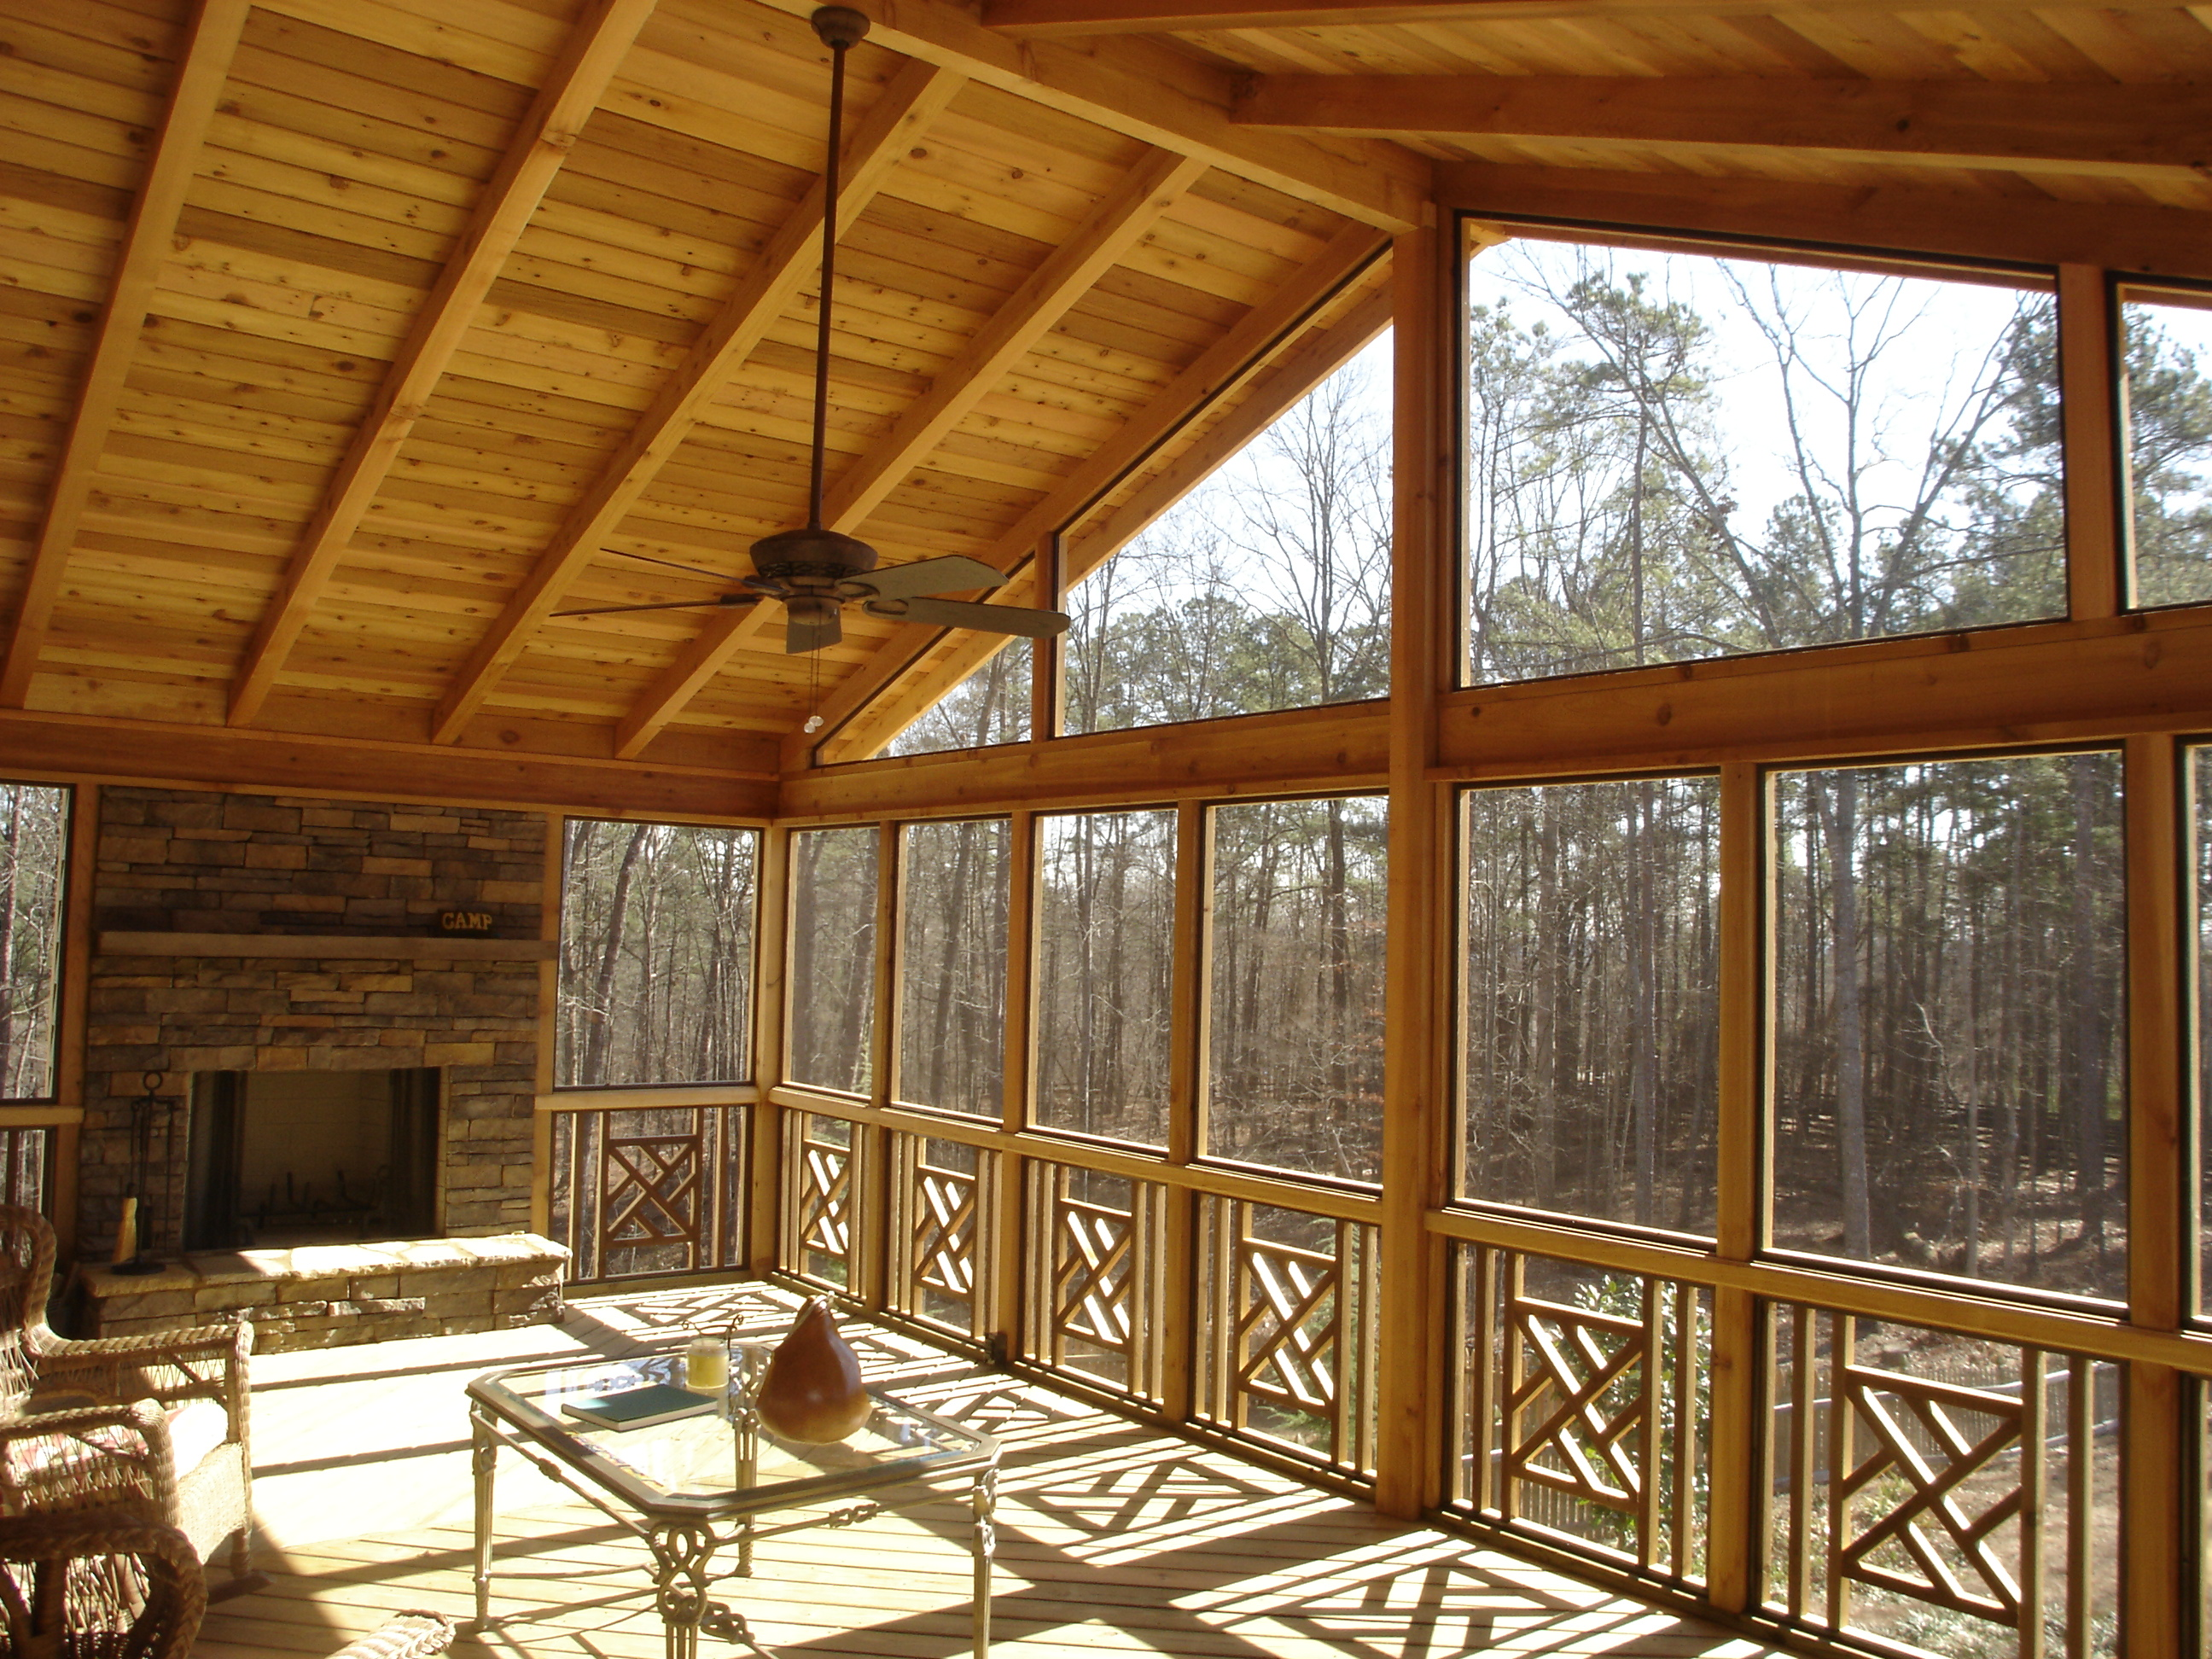 Top 10 reasons for building a screen porch columbus for Screen porch blueprints